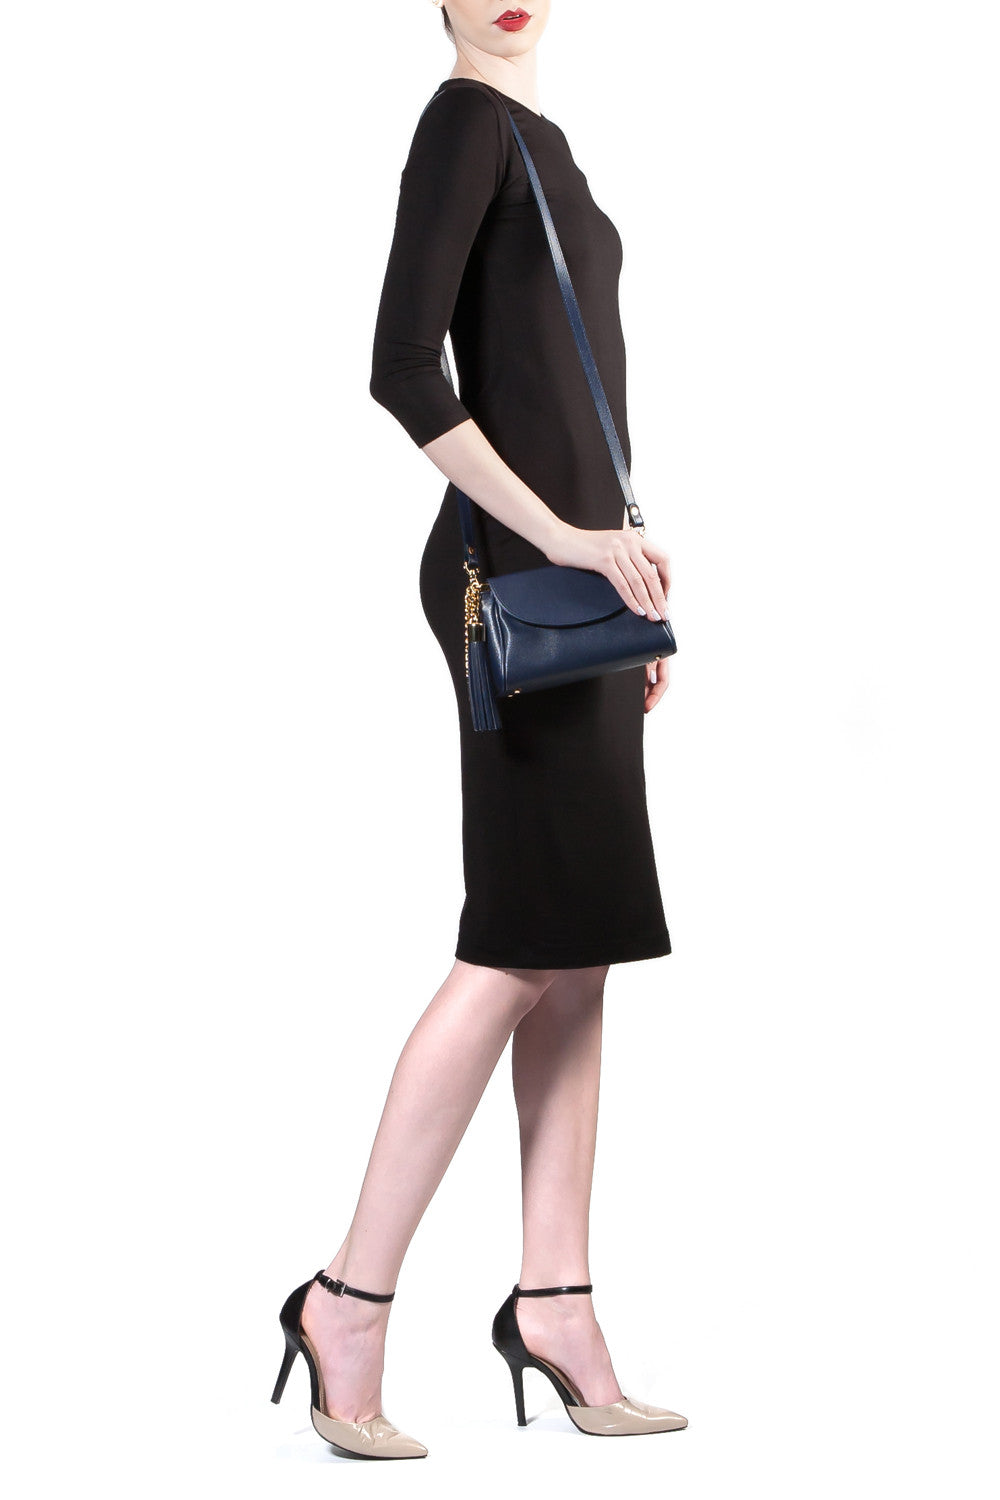 'Emmy' Navy Saffiano Leather Convertible Clutch | Model Strap View| Mel Boteri Handbags